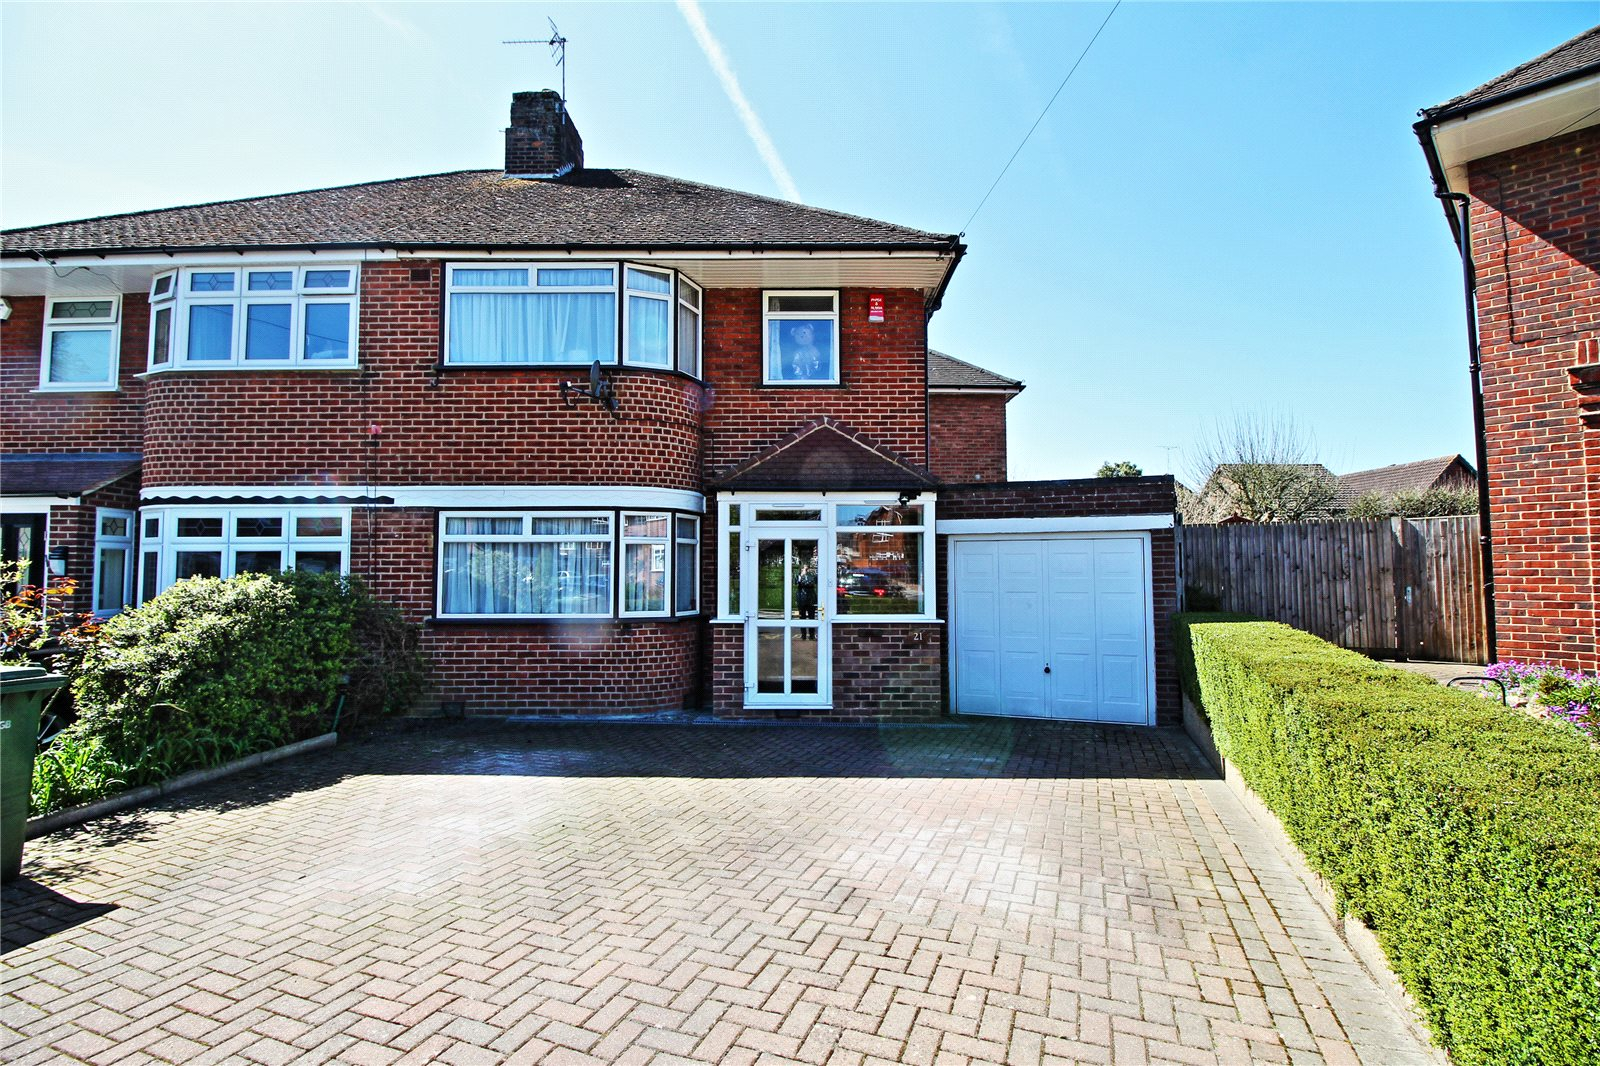 4 Bedrooms Semi Detached House for sale in Peters Close Stanmore Middlesex HA7